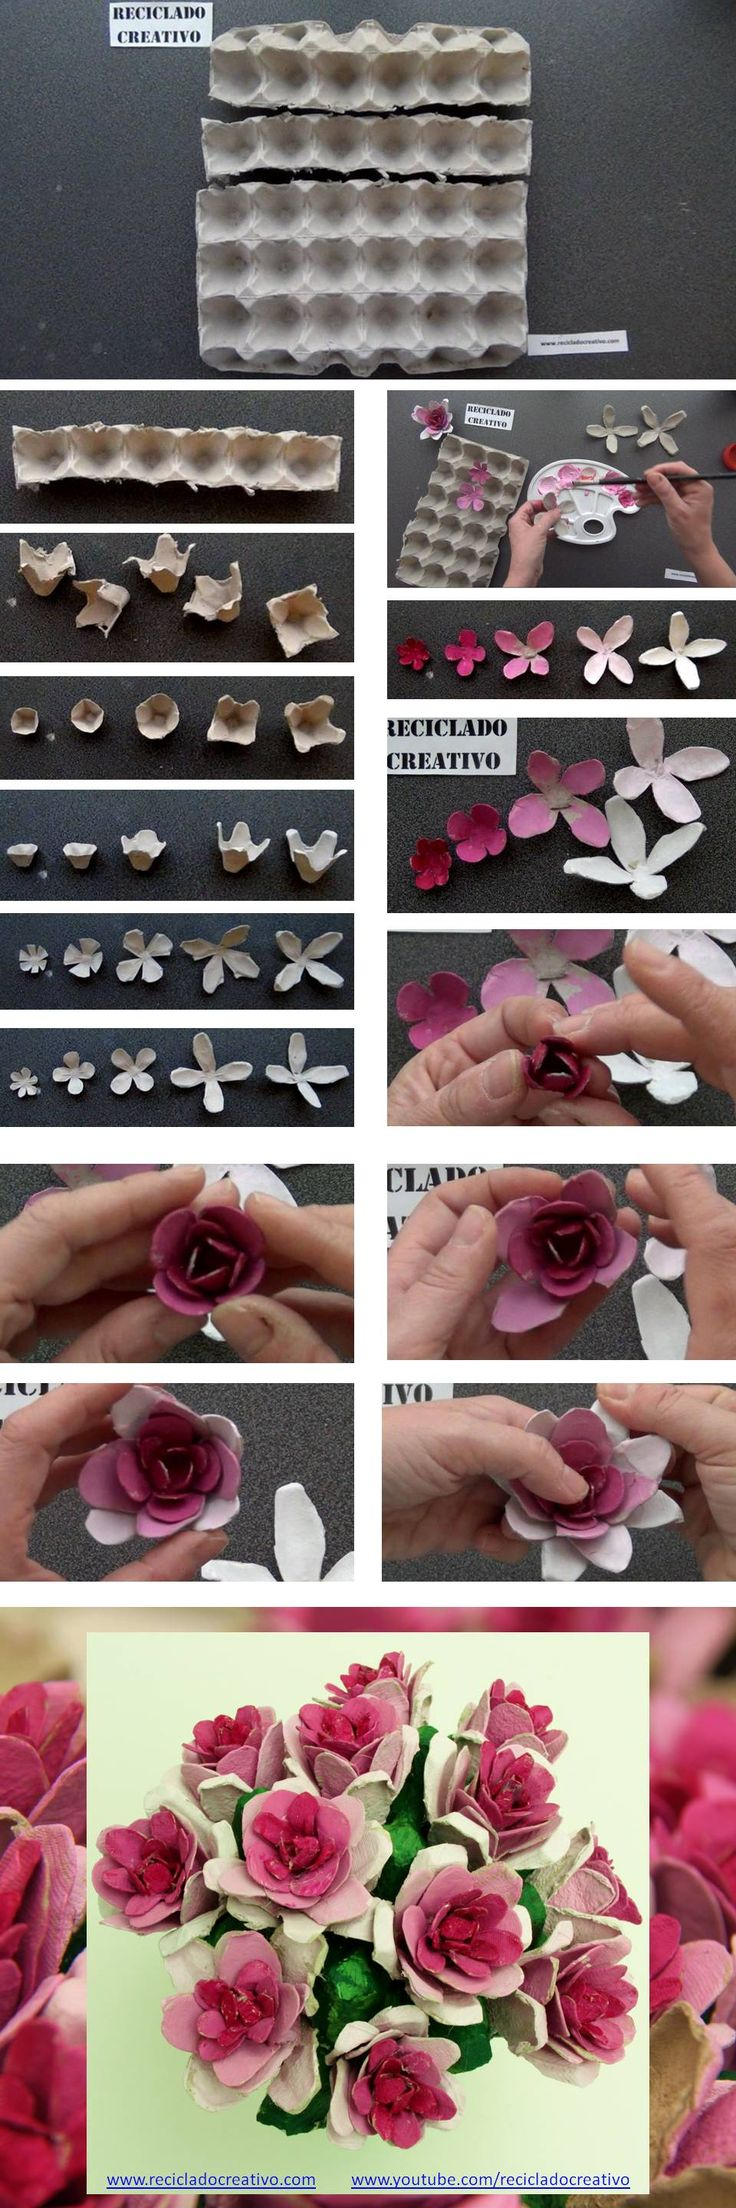 Egg carton cardboard flowers